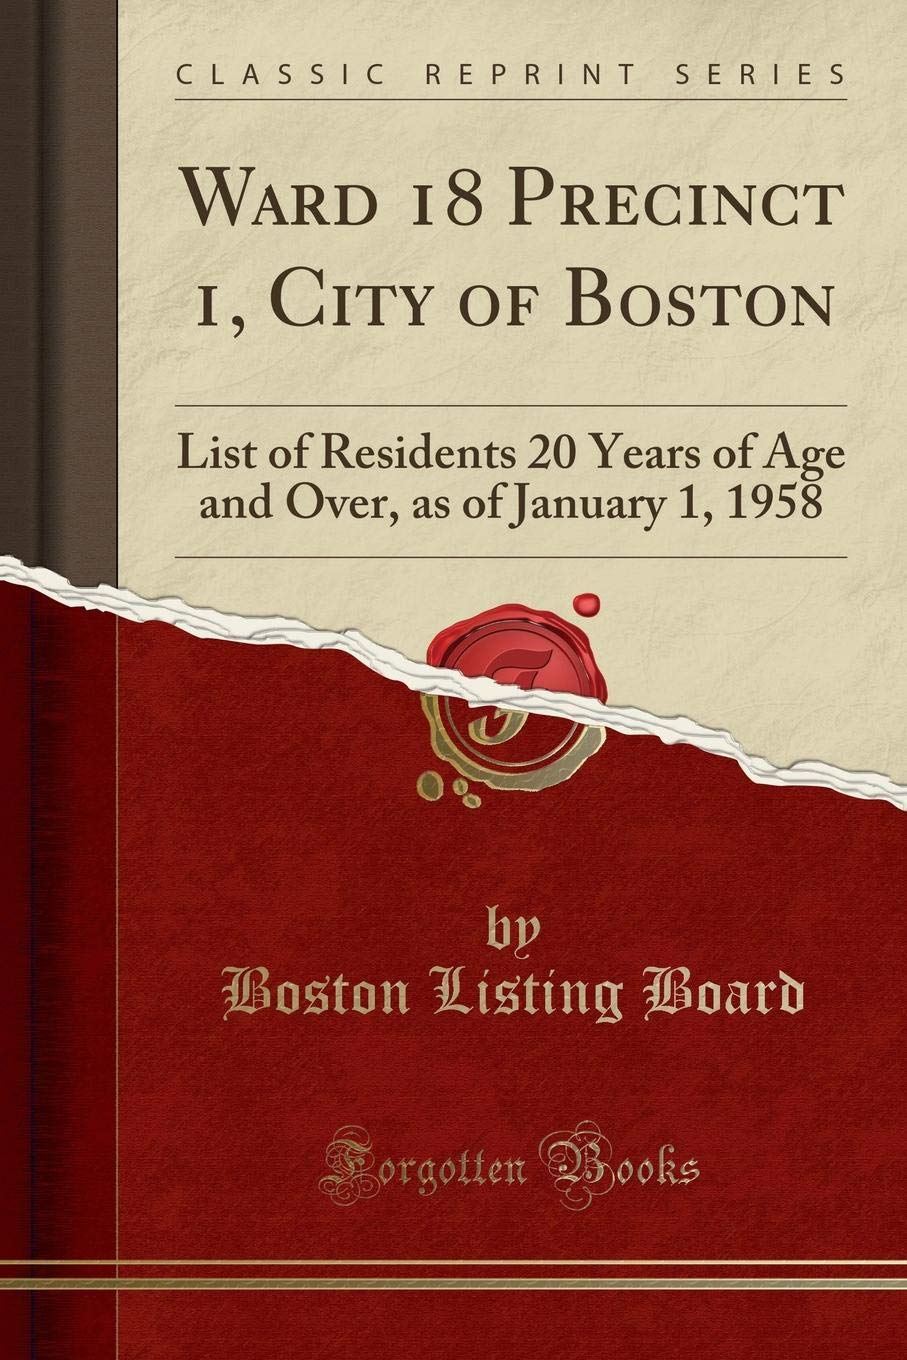 Ward 18 Precinct 1, City of Boston: List of Residents 20 Years of Age and Over, as of January 1, 1958 (Classic Reprint) ebook